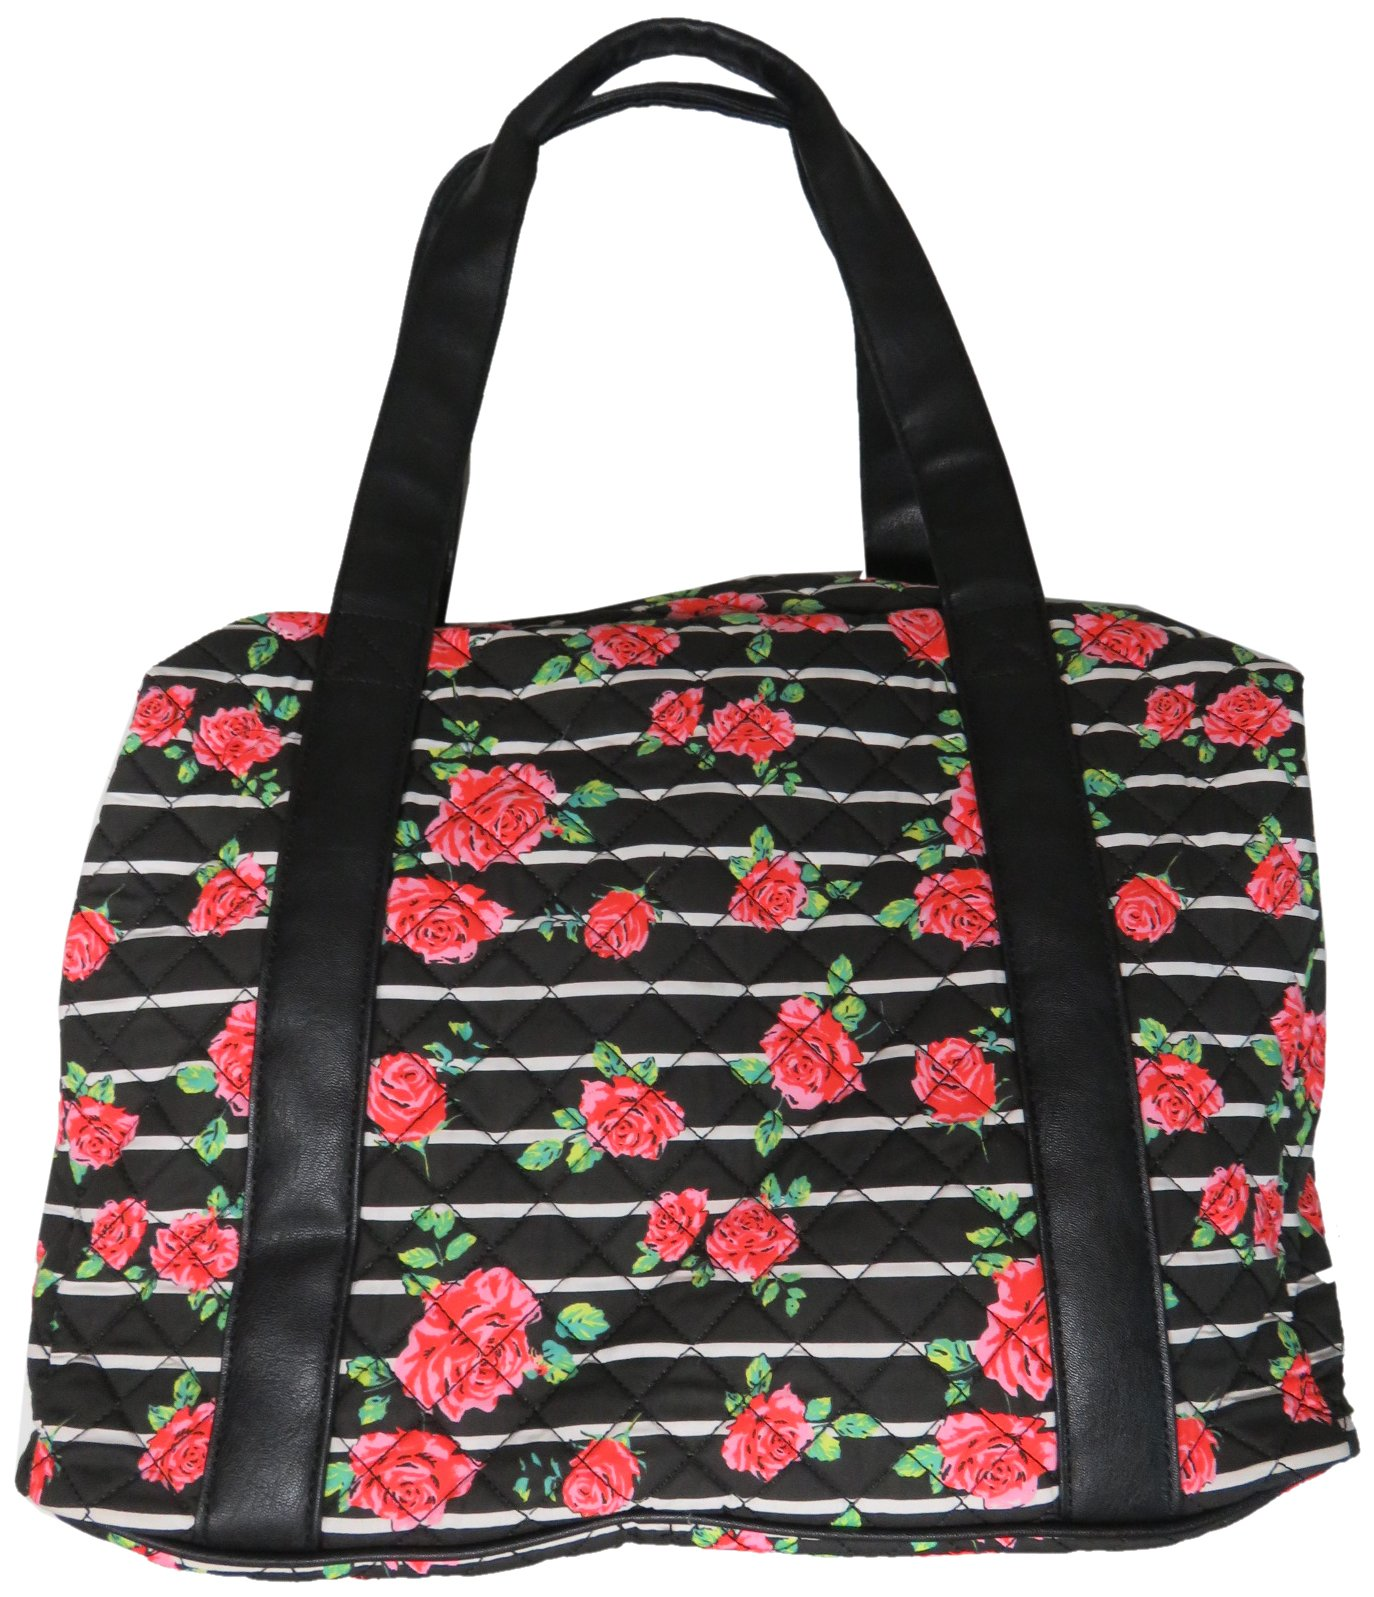 Luv Betsey Women's Playyr Quilted Weekender Rose Luggage by Luv Betsey (Image #1)